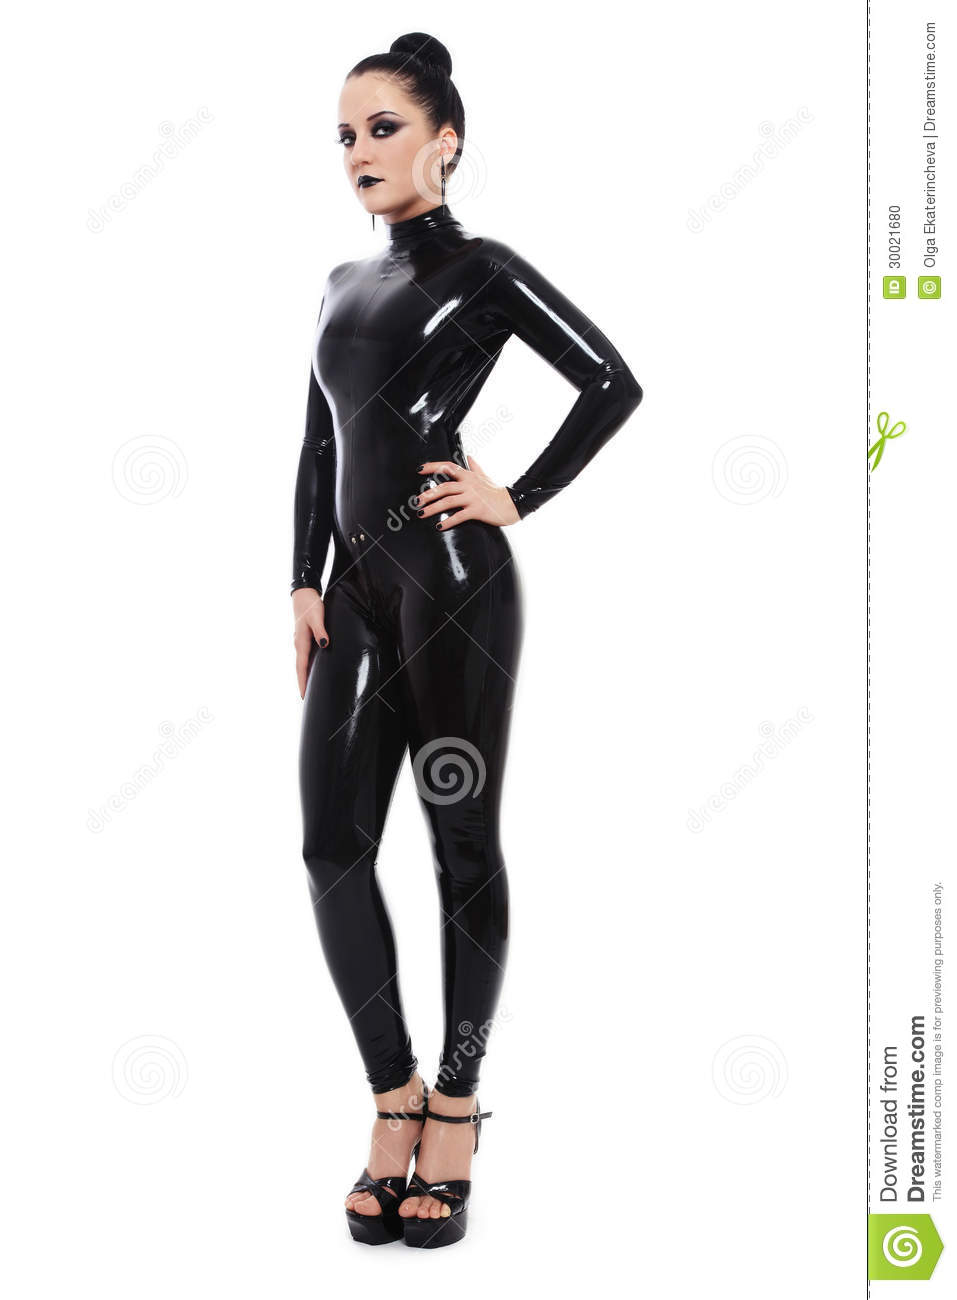 Can ask girls in latex catsuits are